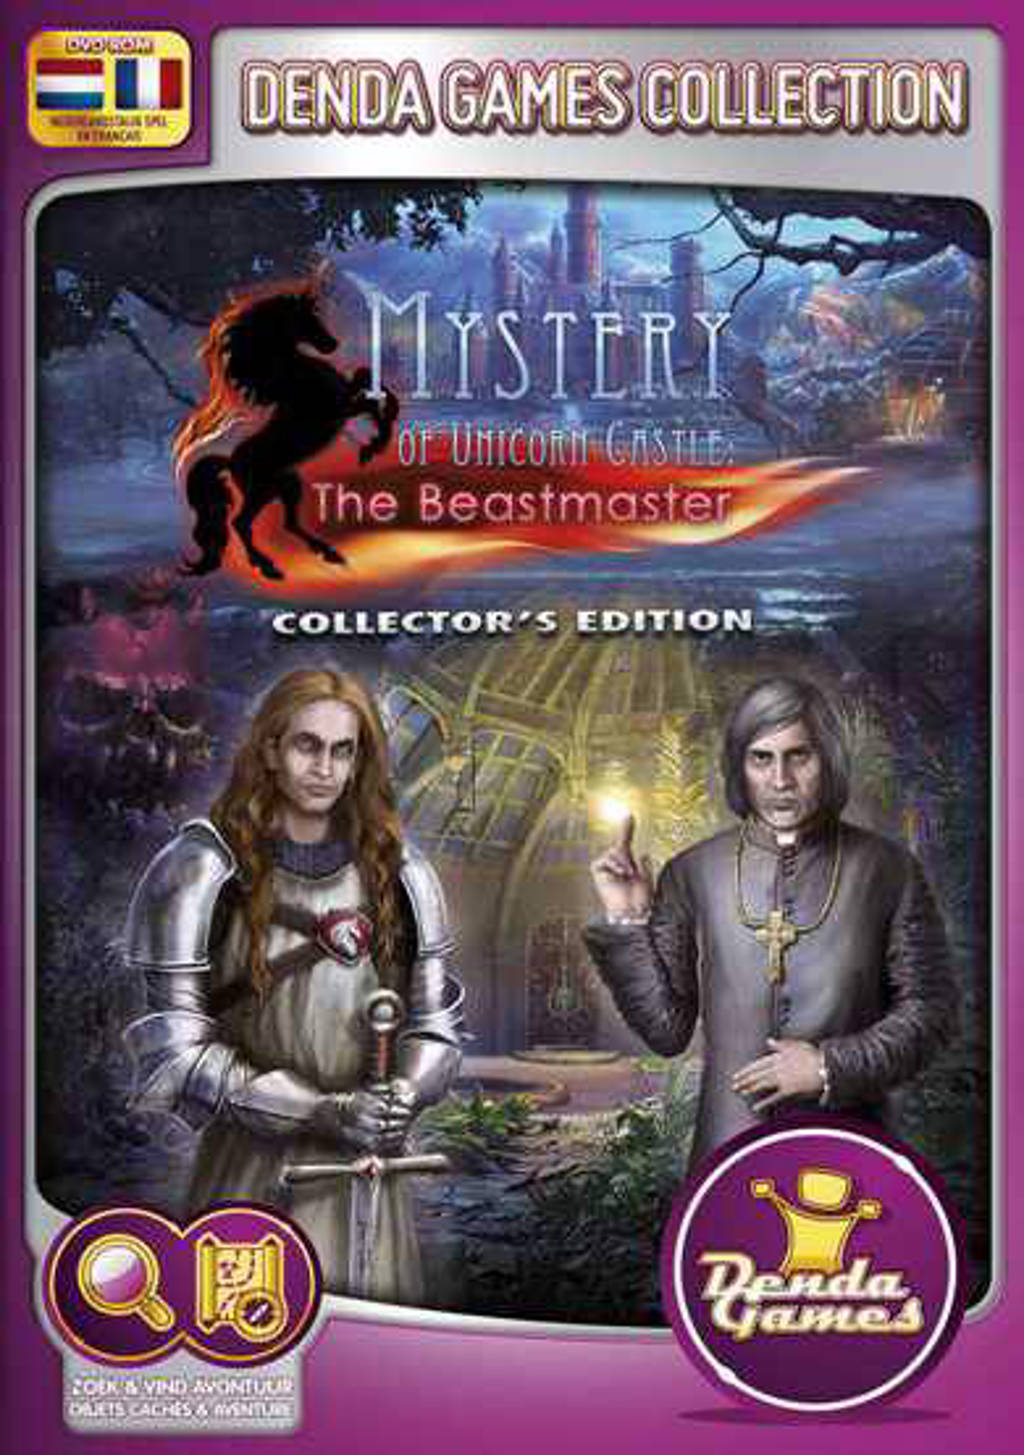 Mystery of the unicorn castle - The beastmaster (Collectors edition) (PC)